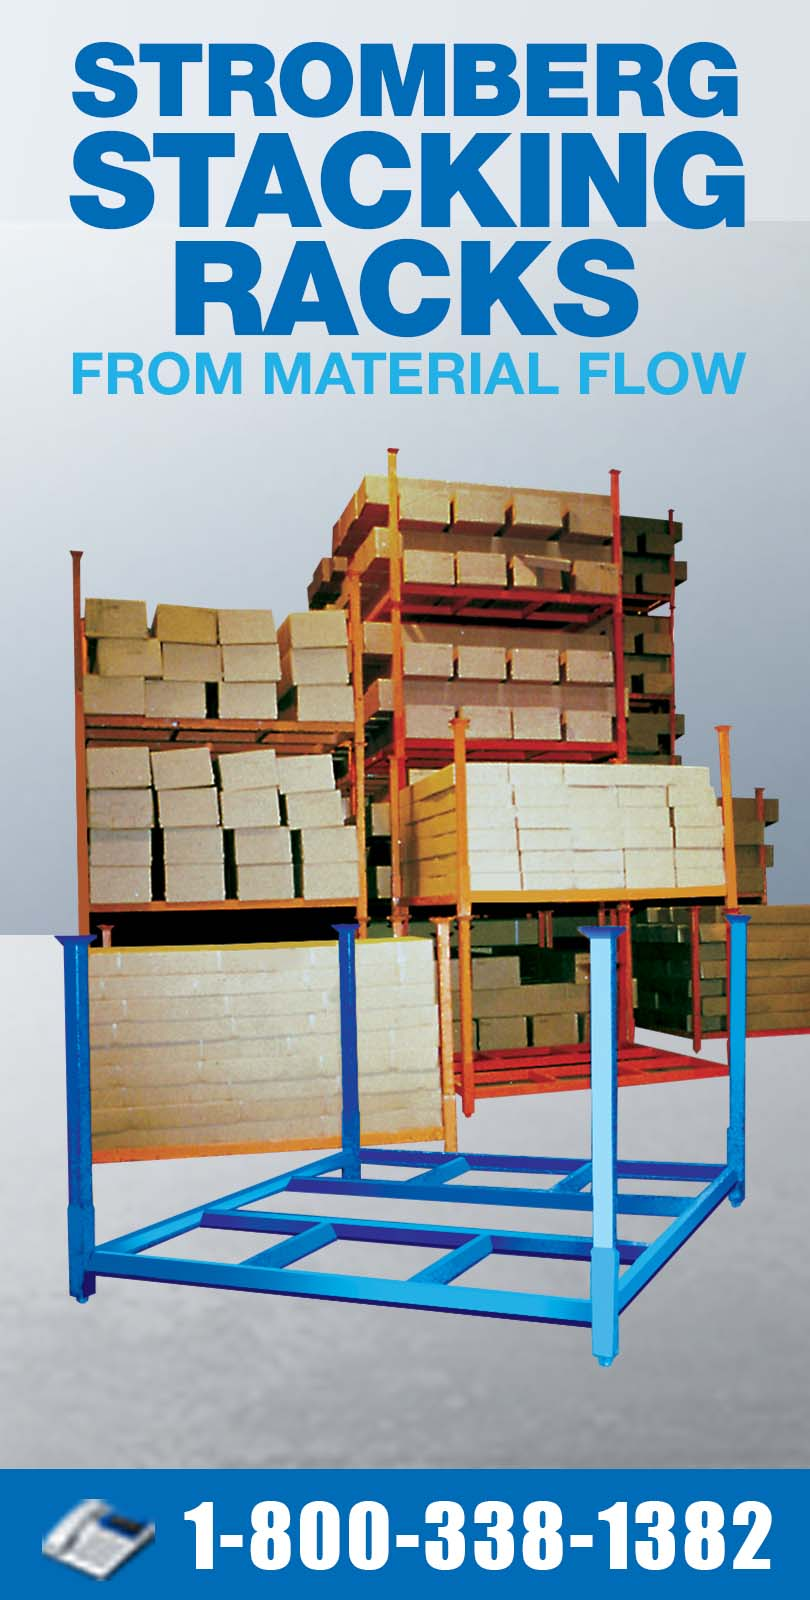 Stromberg Stacking Racks from Material Flow